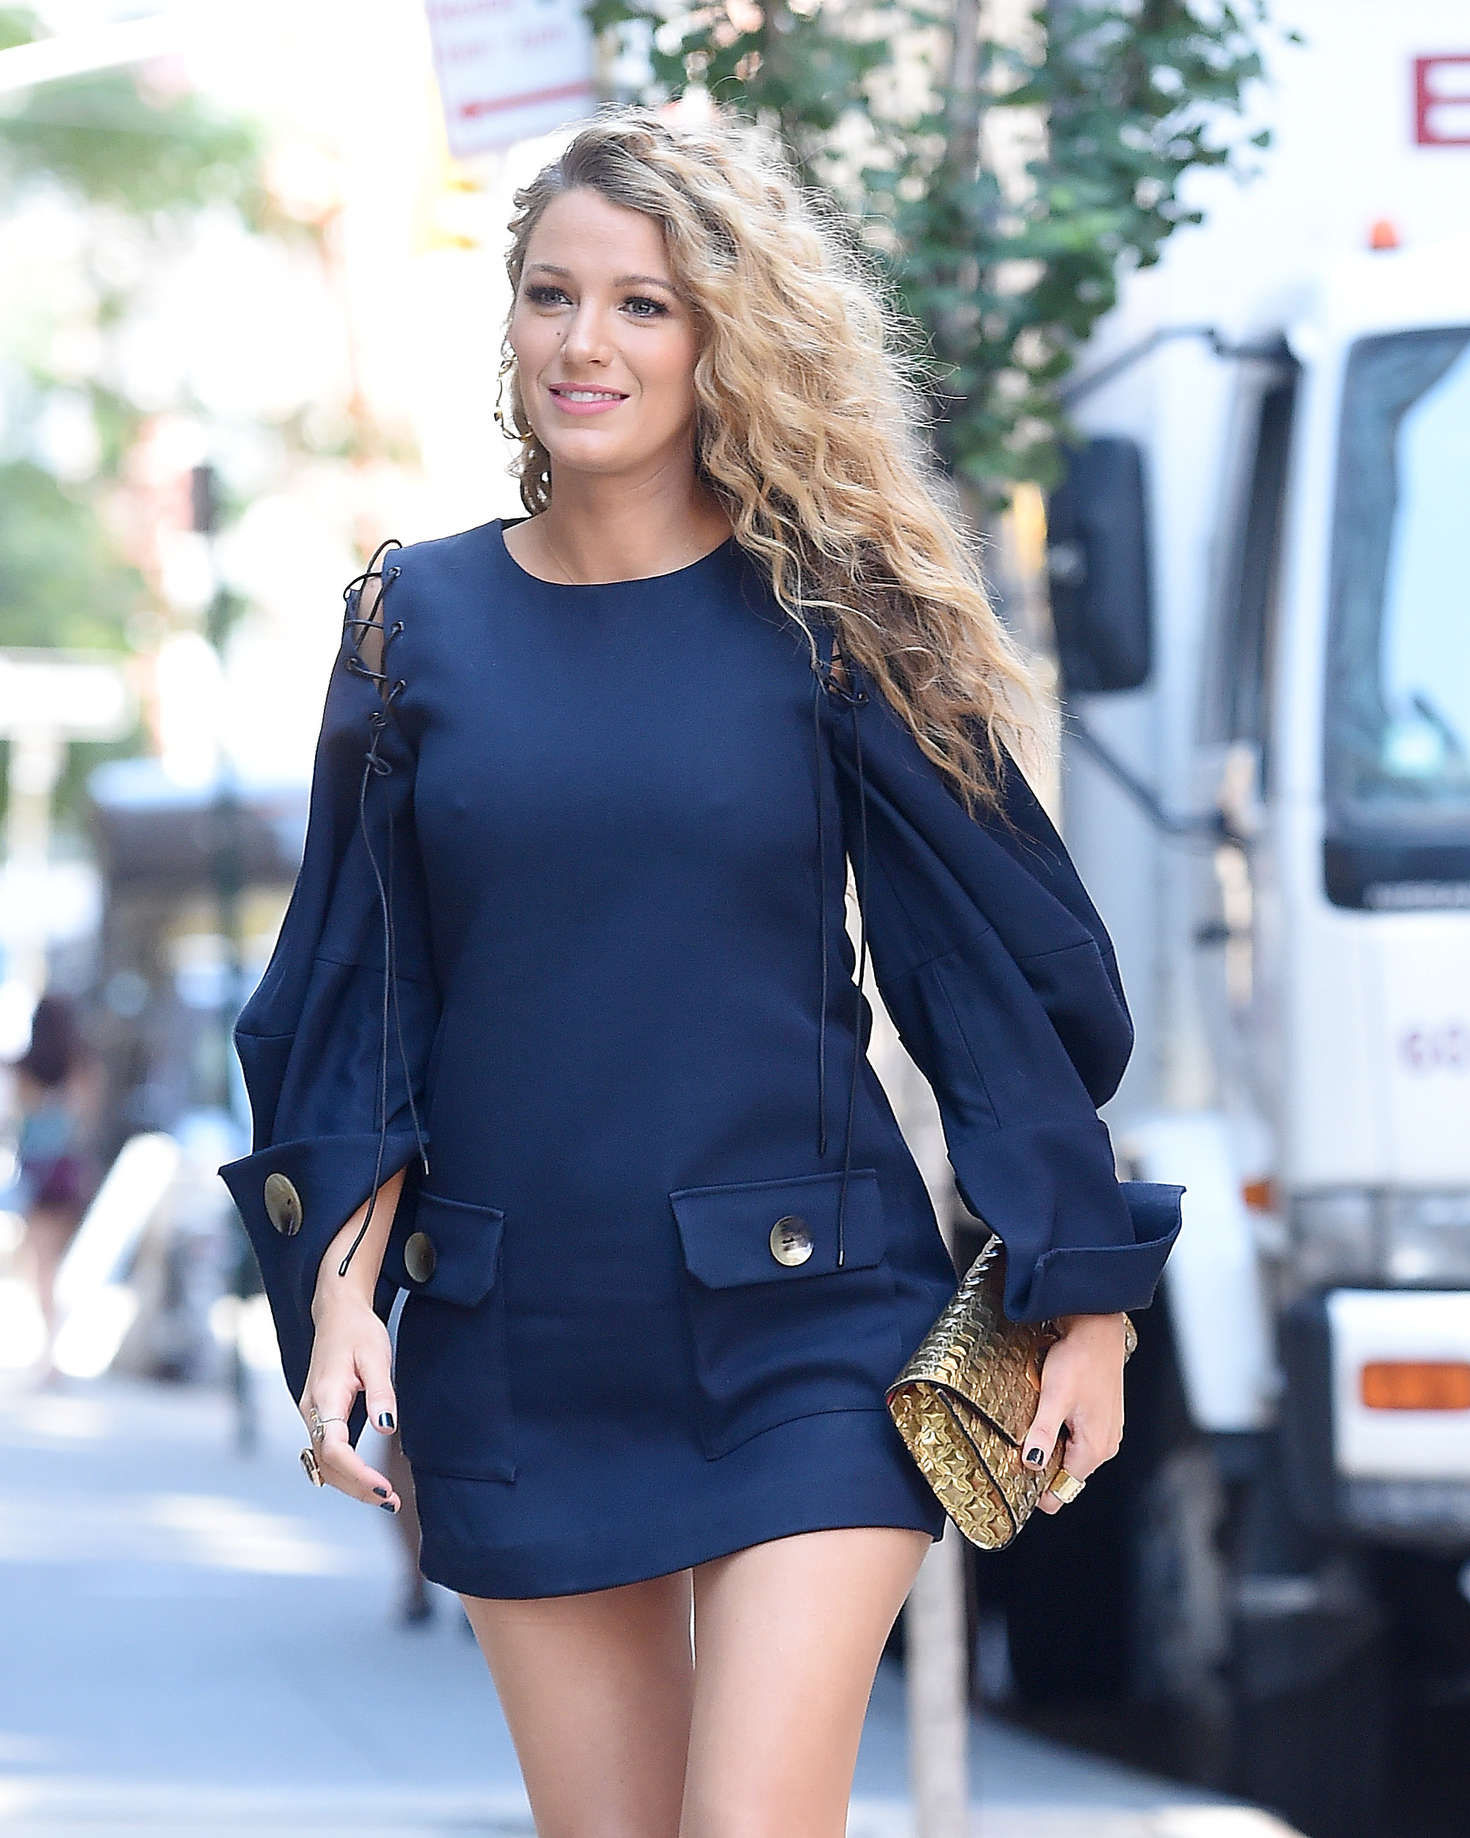 Blake Lively 2016 : Blake Lively in Short Blue Dress -08